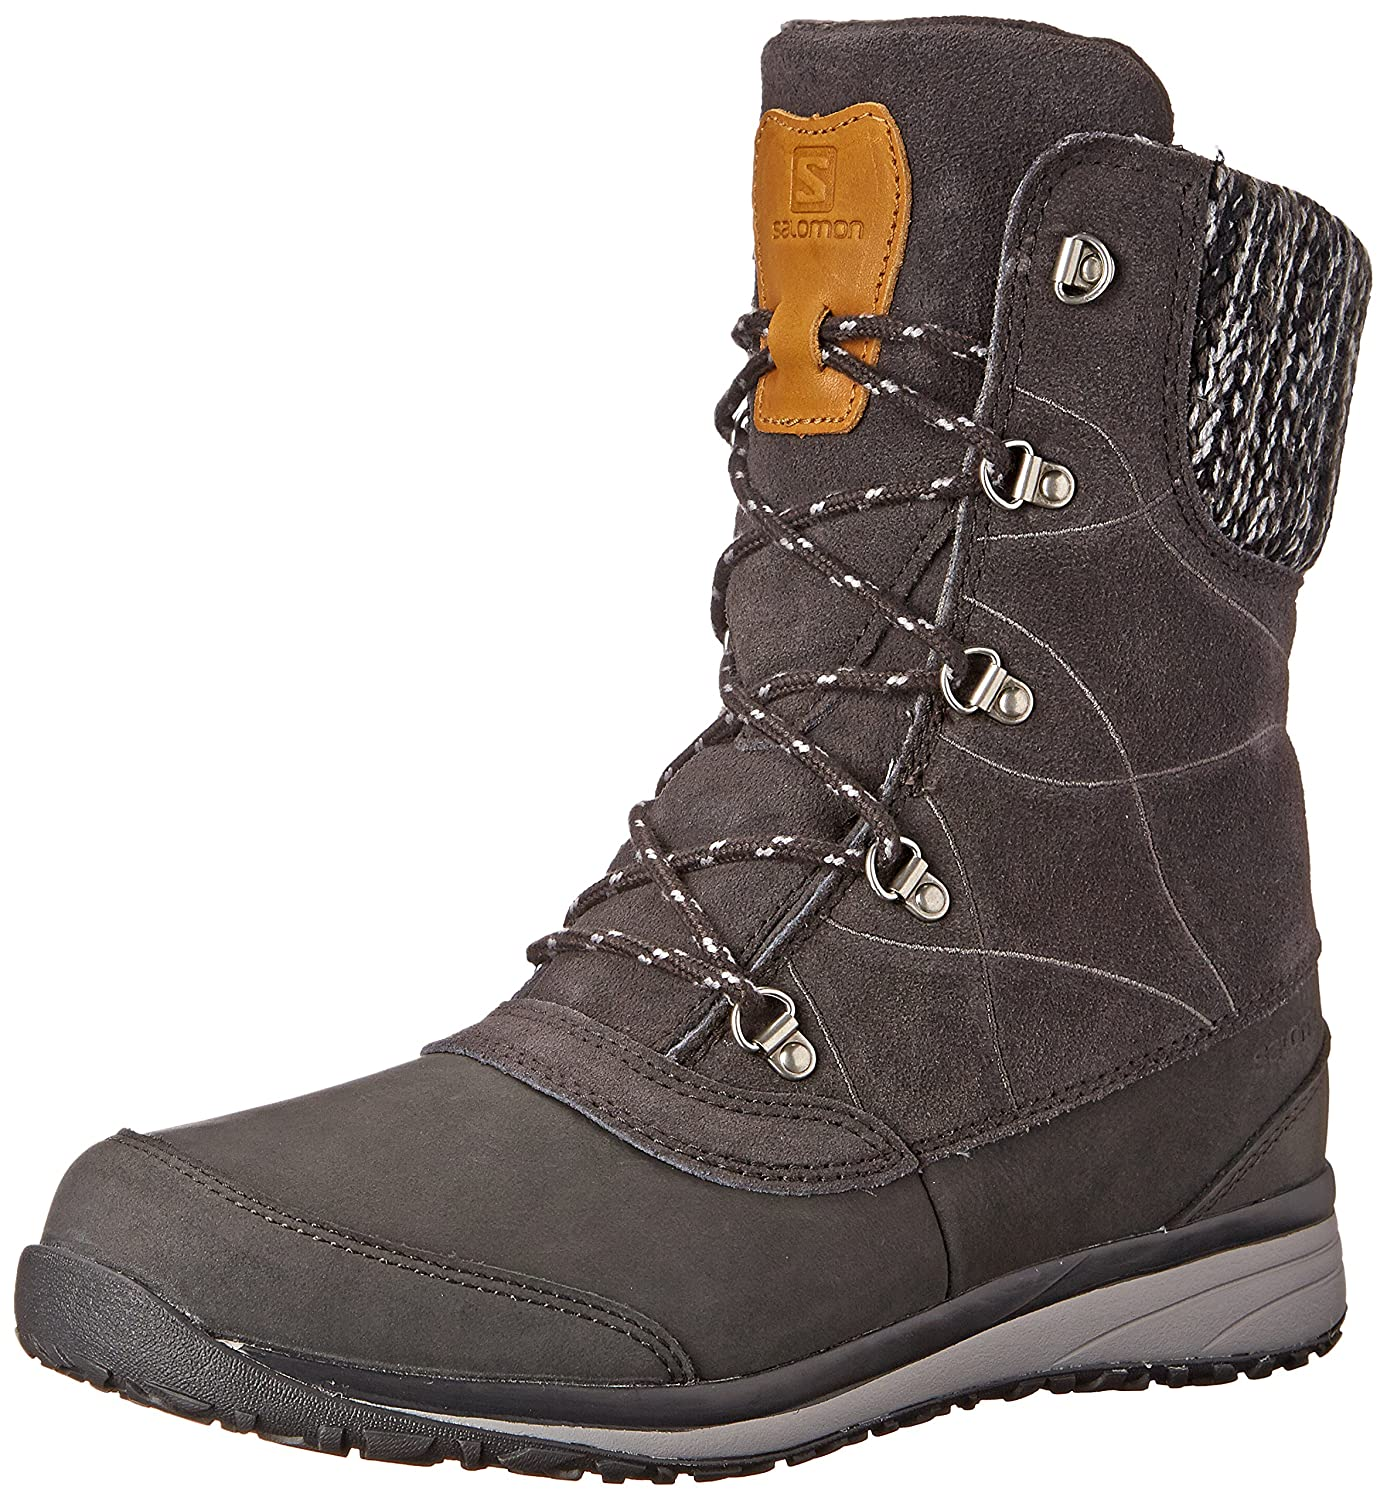 Man's/Woman's Salomon Women's Hime Wedge Mid B00PTWN5OW Wedge Hime Crazy price Quality First Known for its excellent quality 736e13